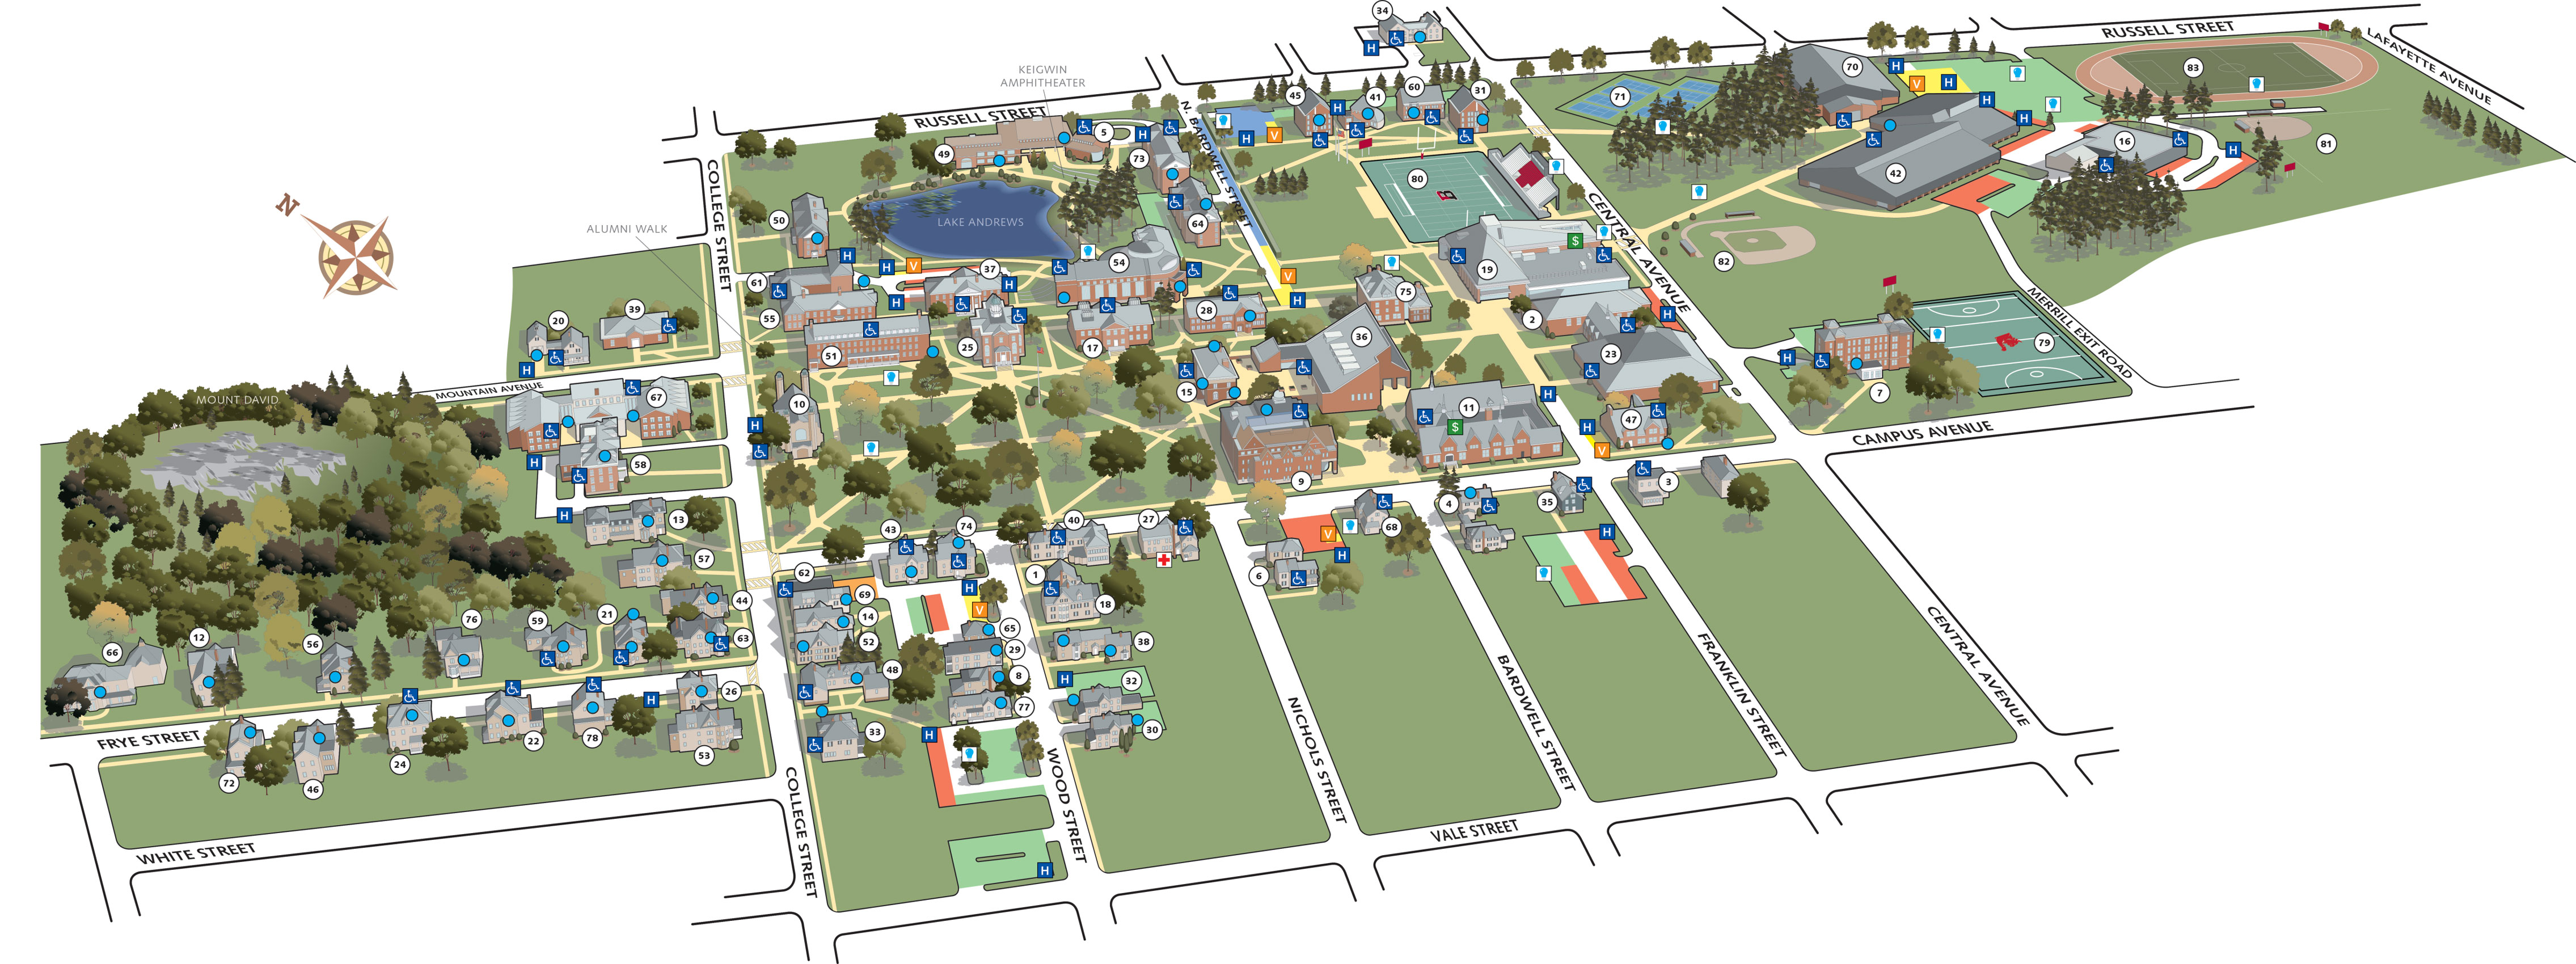 All about Campus Map Bates College   kidskunst.info